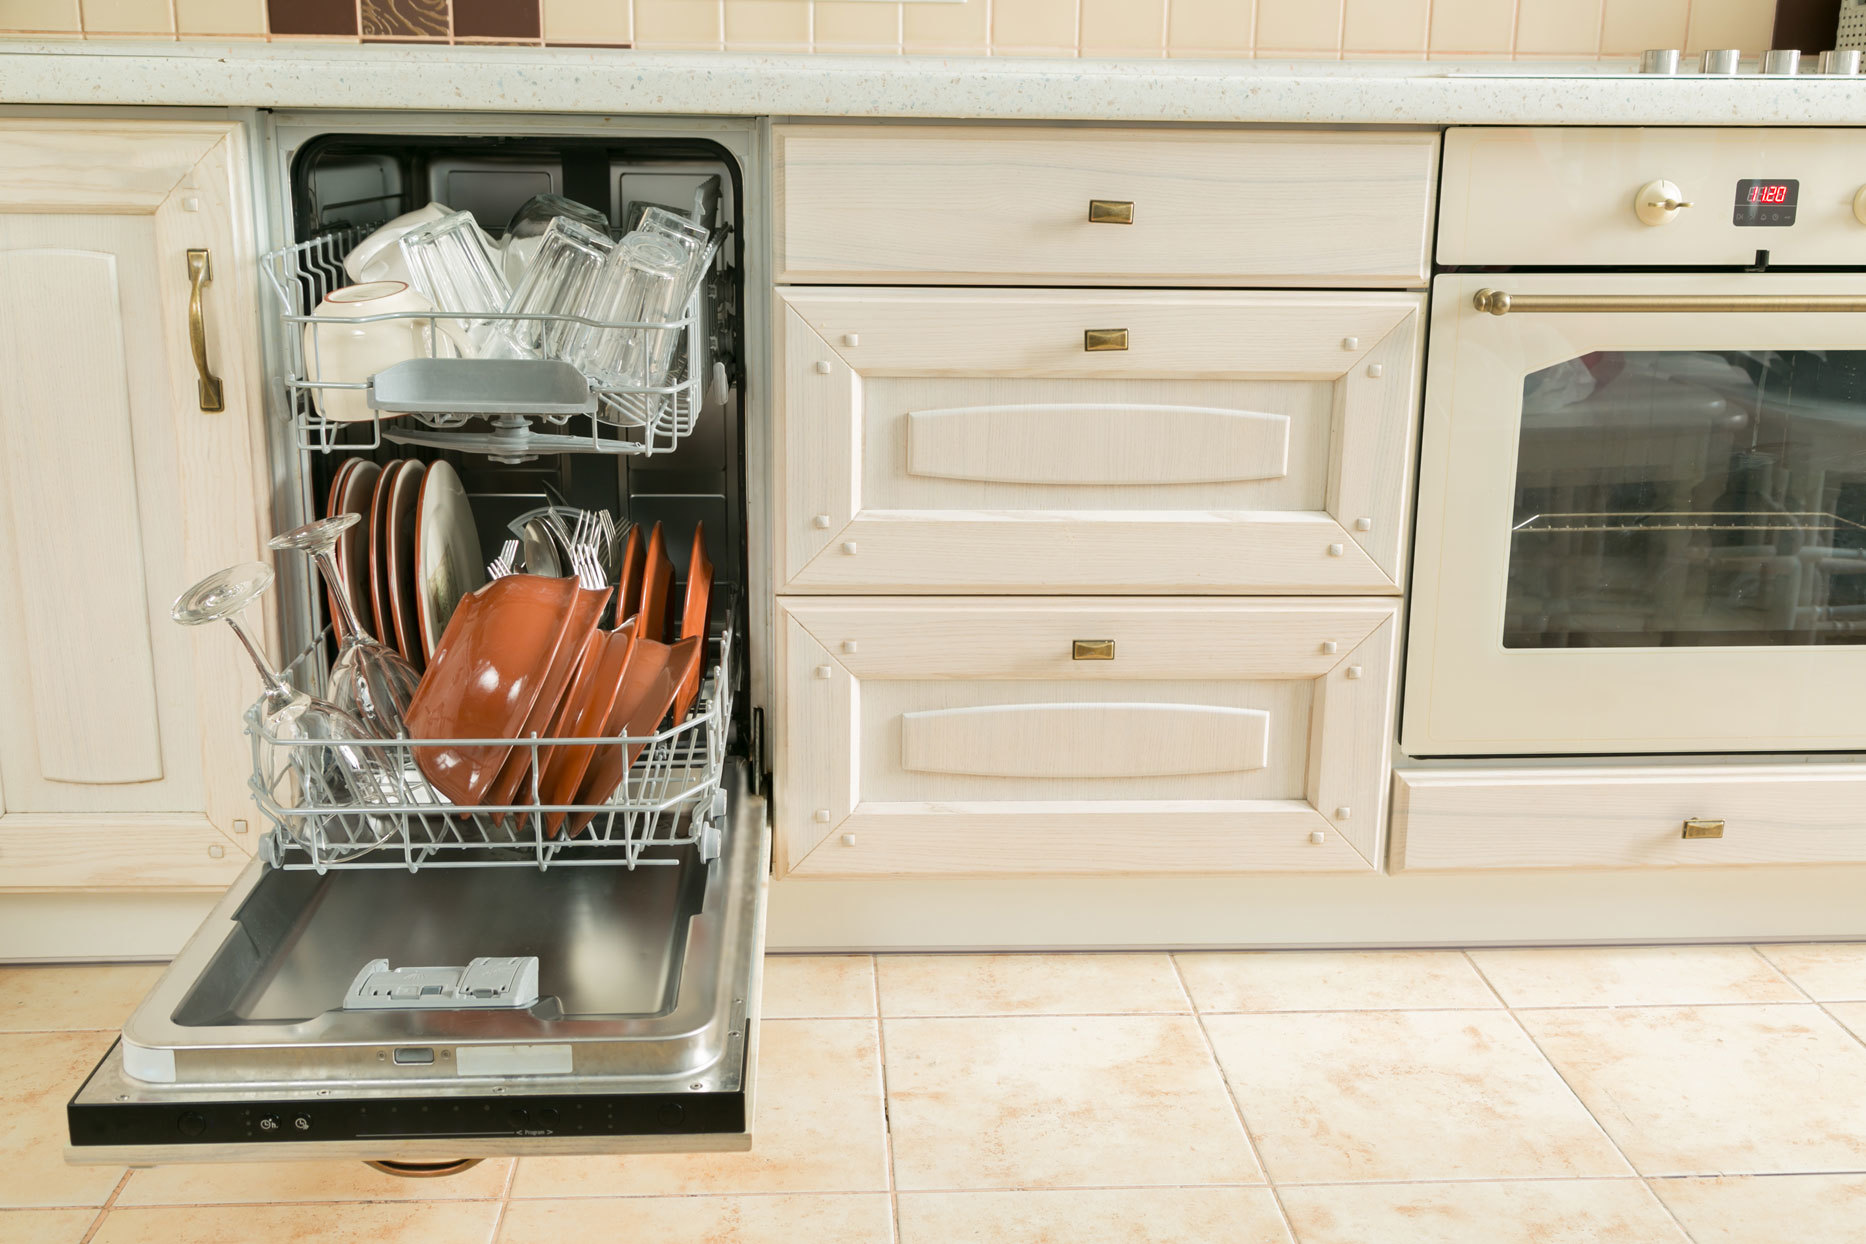 open fully loaded dishwasher